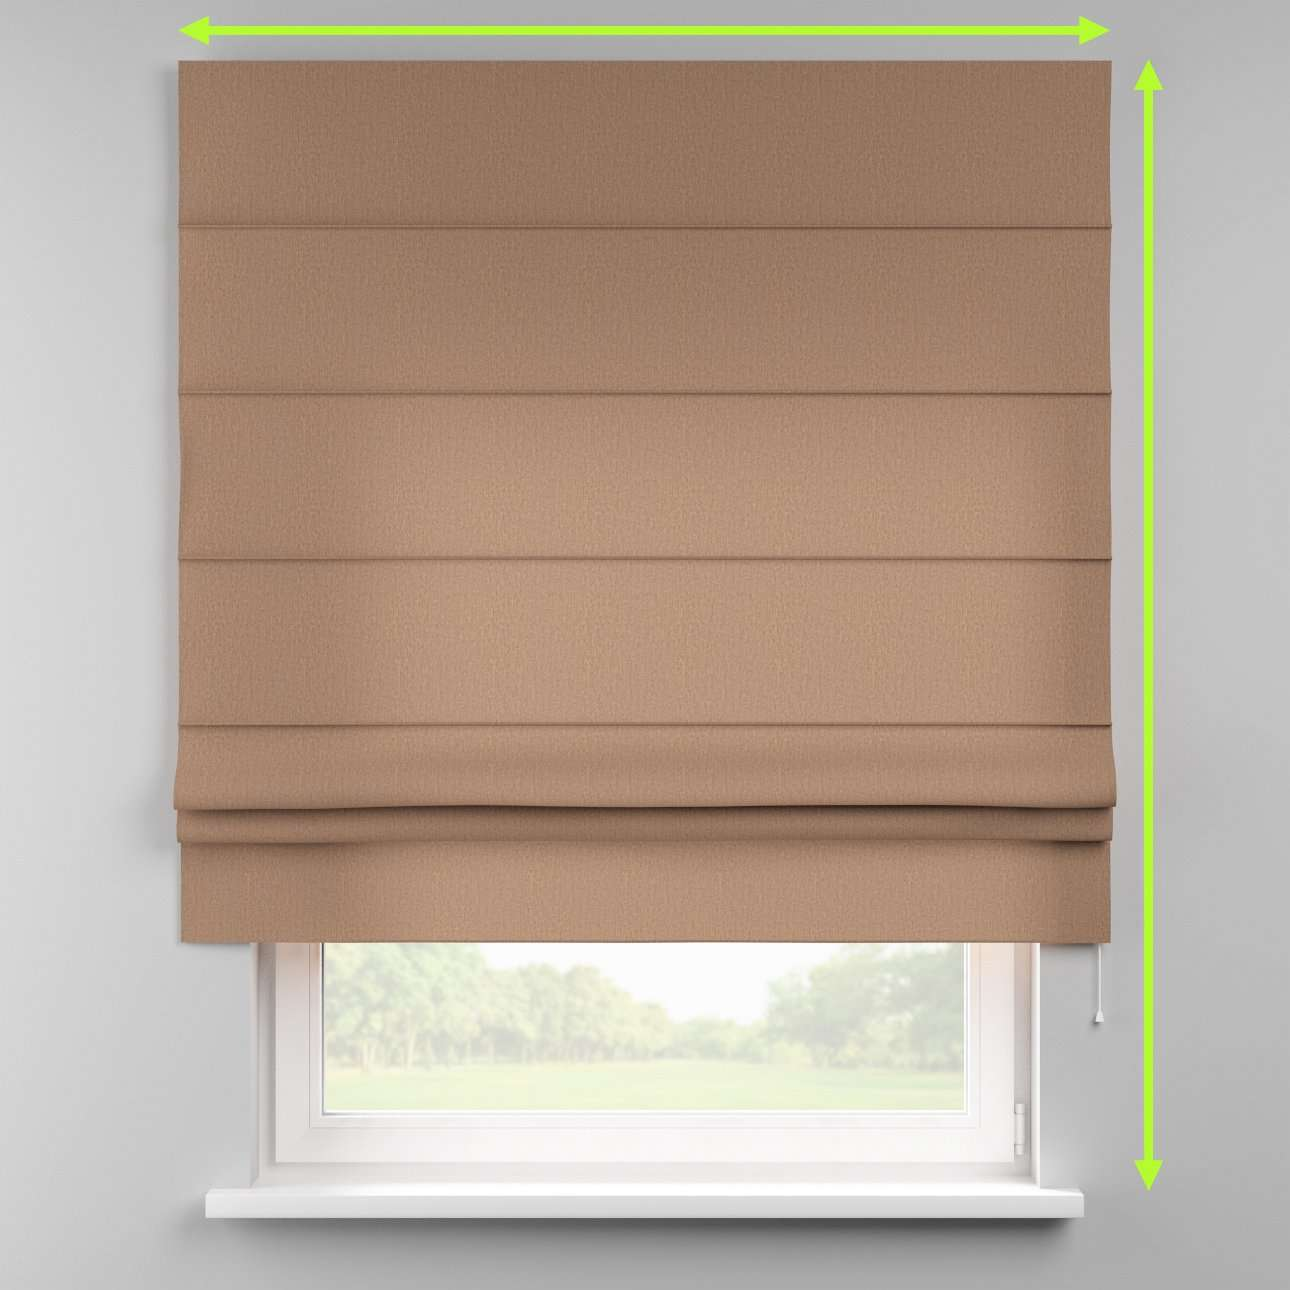 Padva roman blind  in collection Chenille, fabric: 702-21